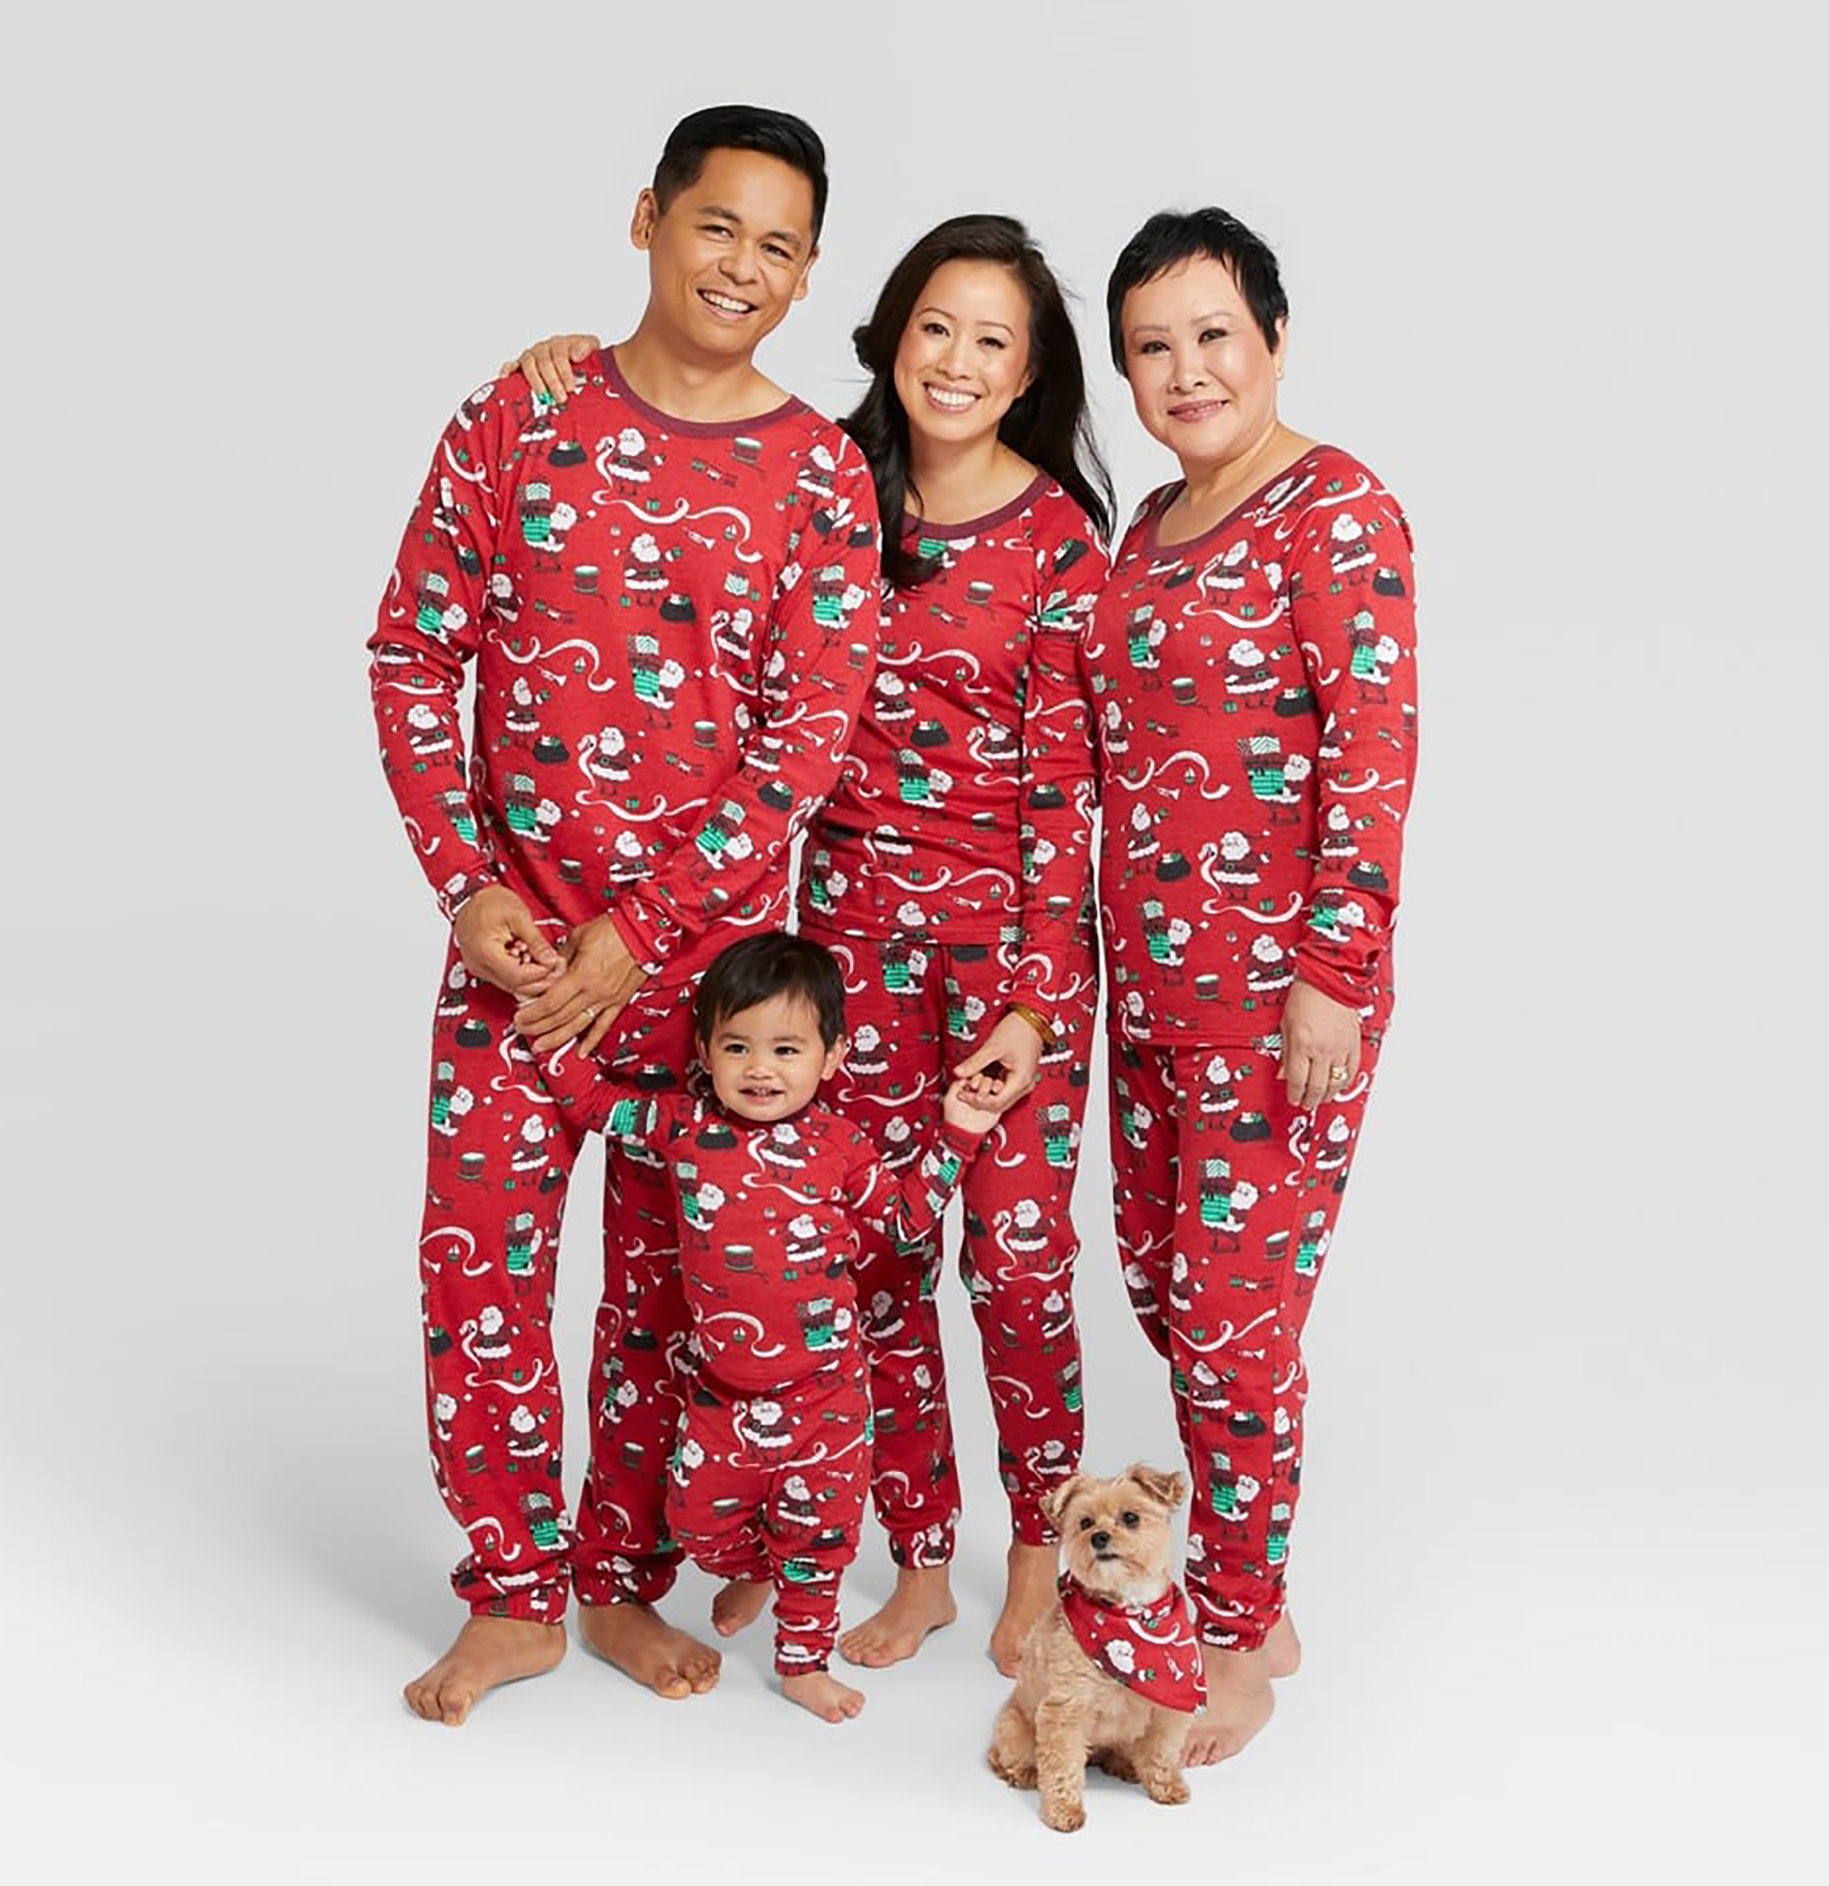 nite nite munki munki holiday santas list family pajamas collection - Family Pajamas Christmas